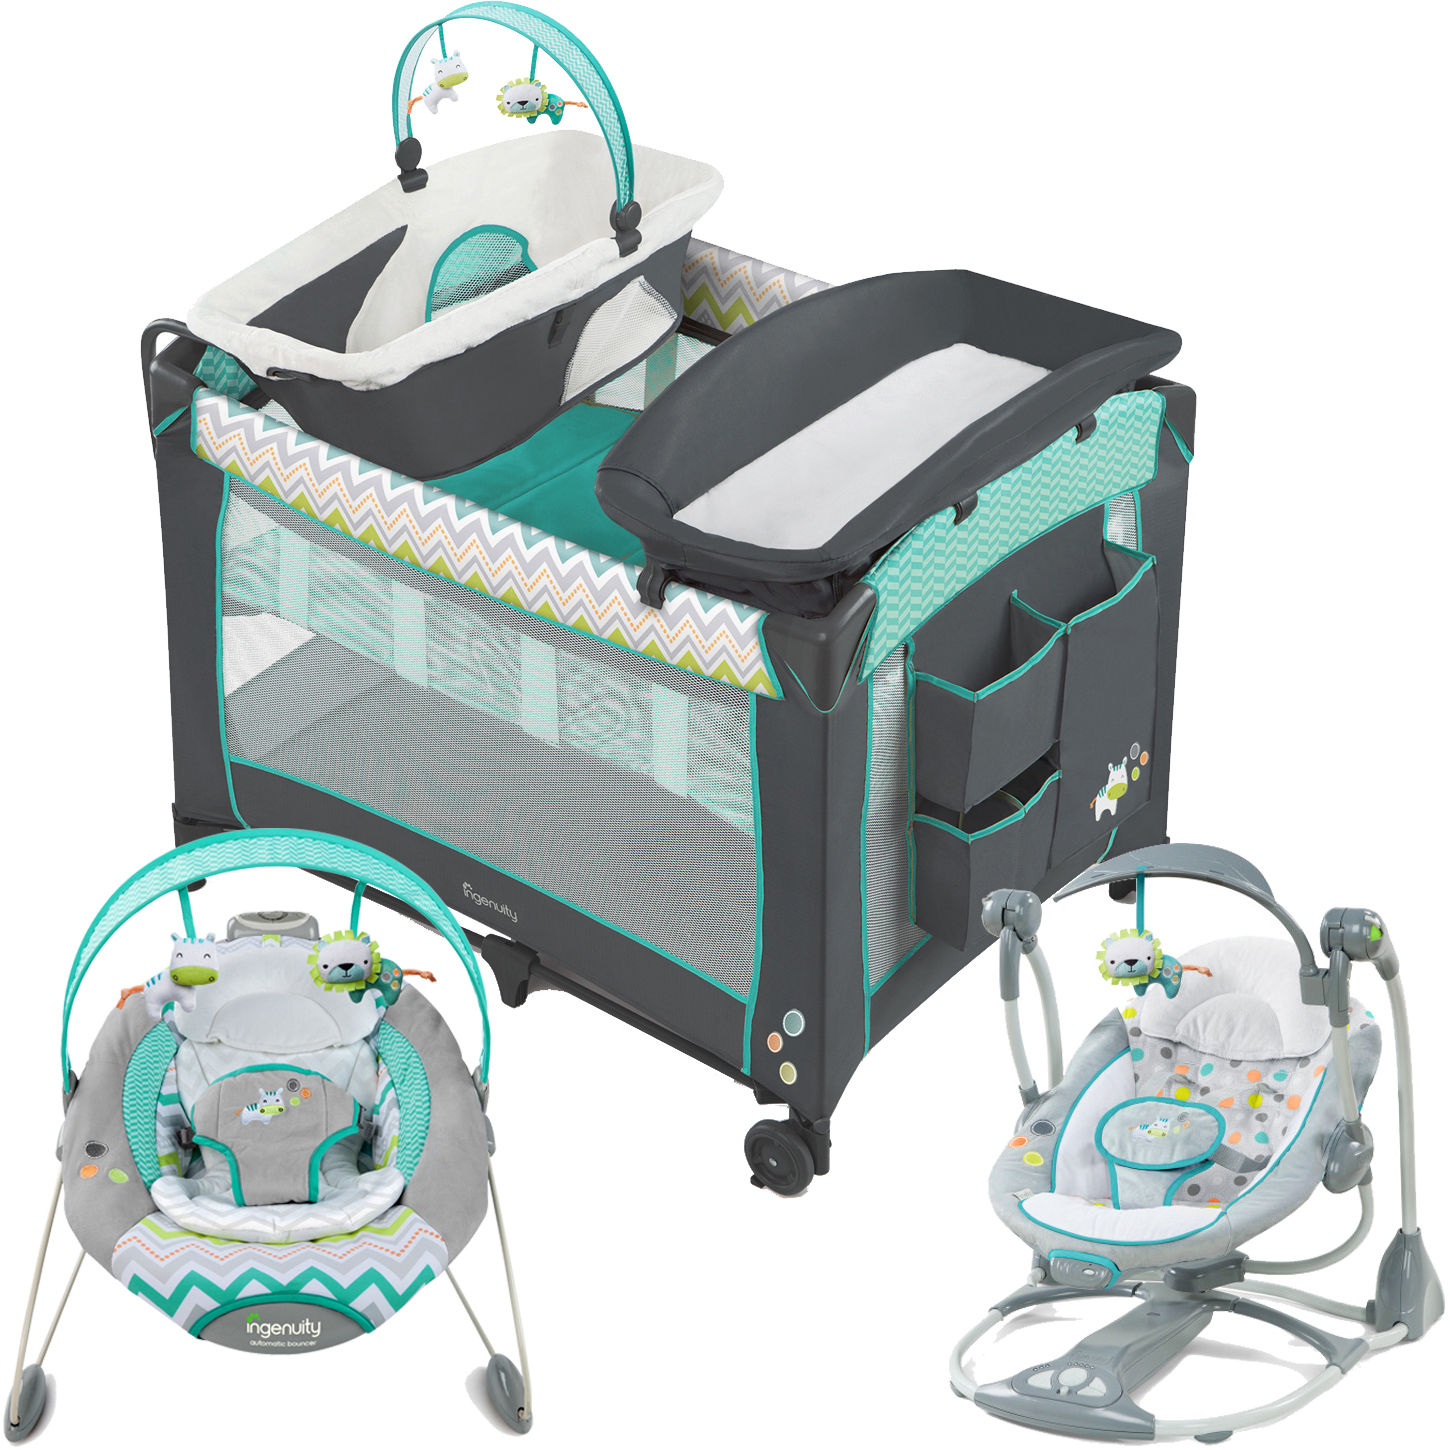 Ingenuity Ridgedale Collection Playard, Swing, and Bouncer Value Set